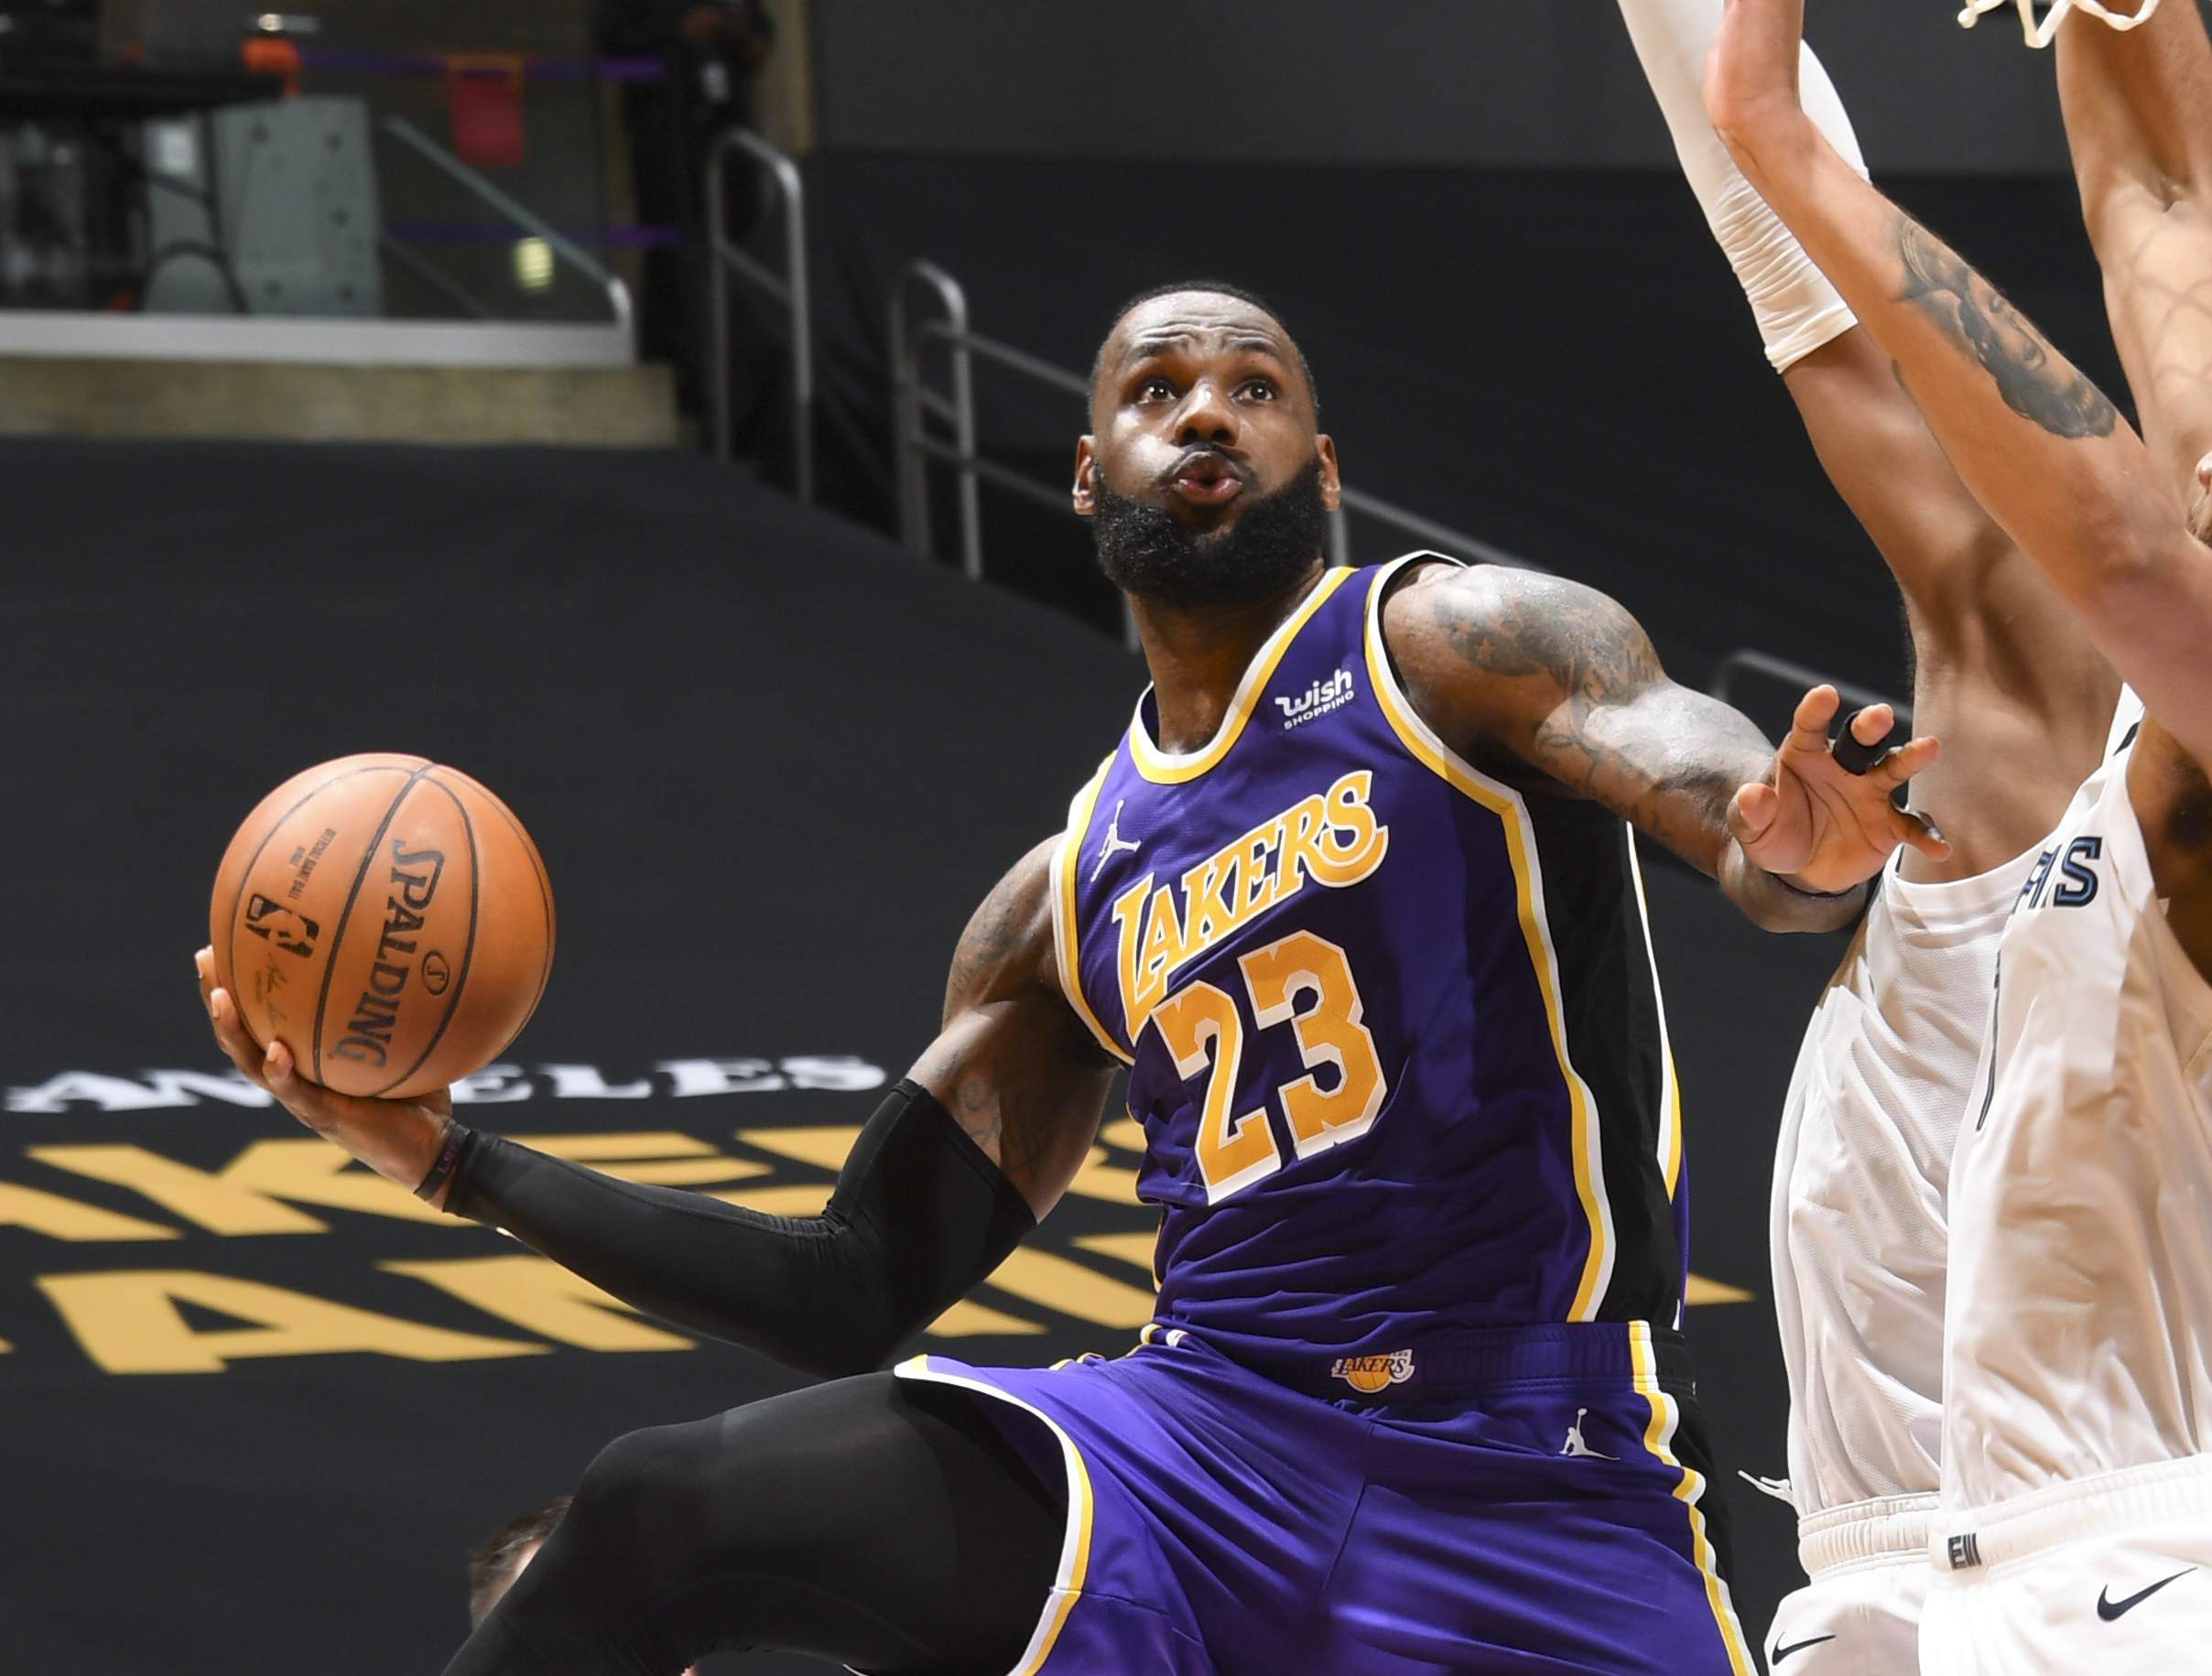 Lakers' LeBron James, Kyle Kuzma receive warnings for violating anti-flopping rule